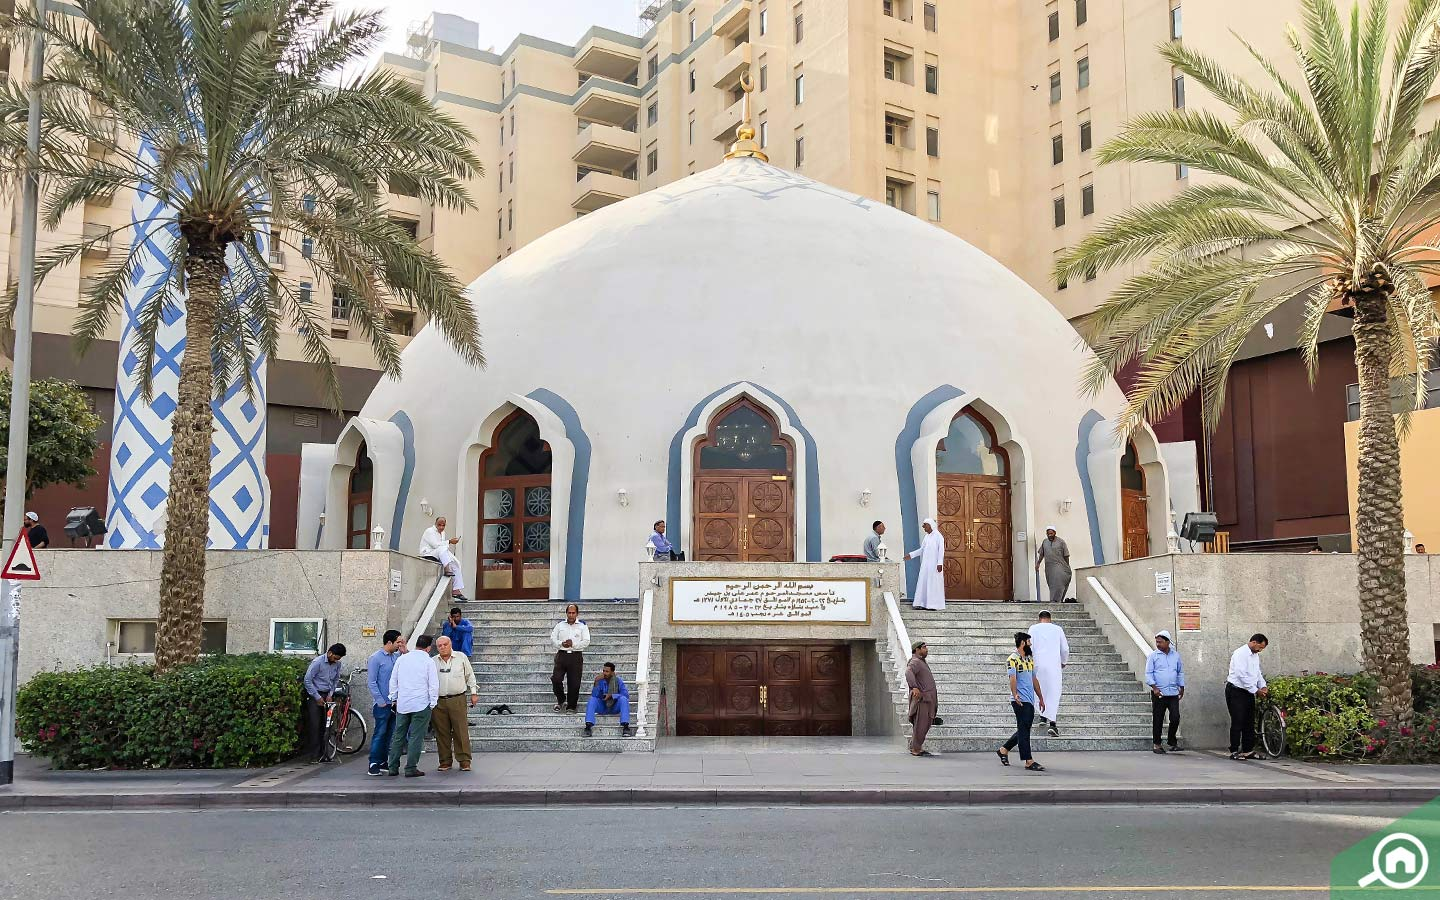 While living in Deira, you can offer prayer in the mosque.